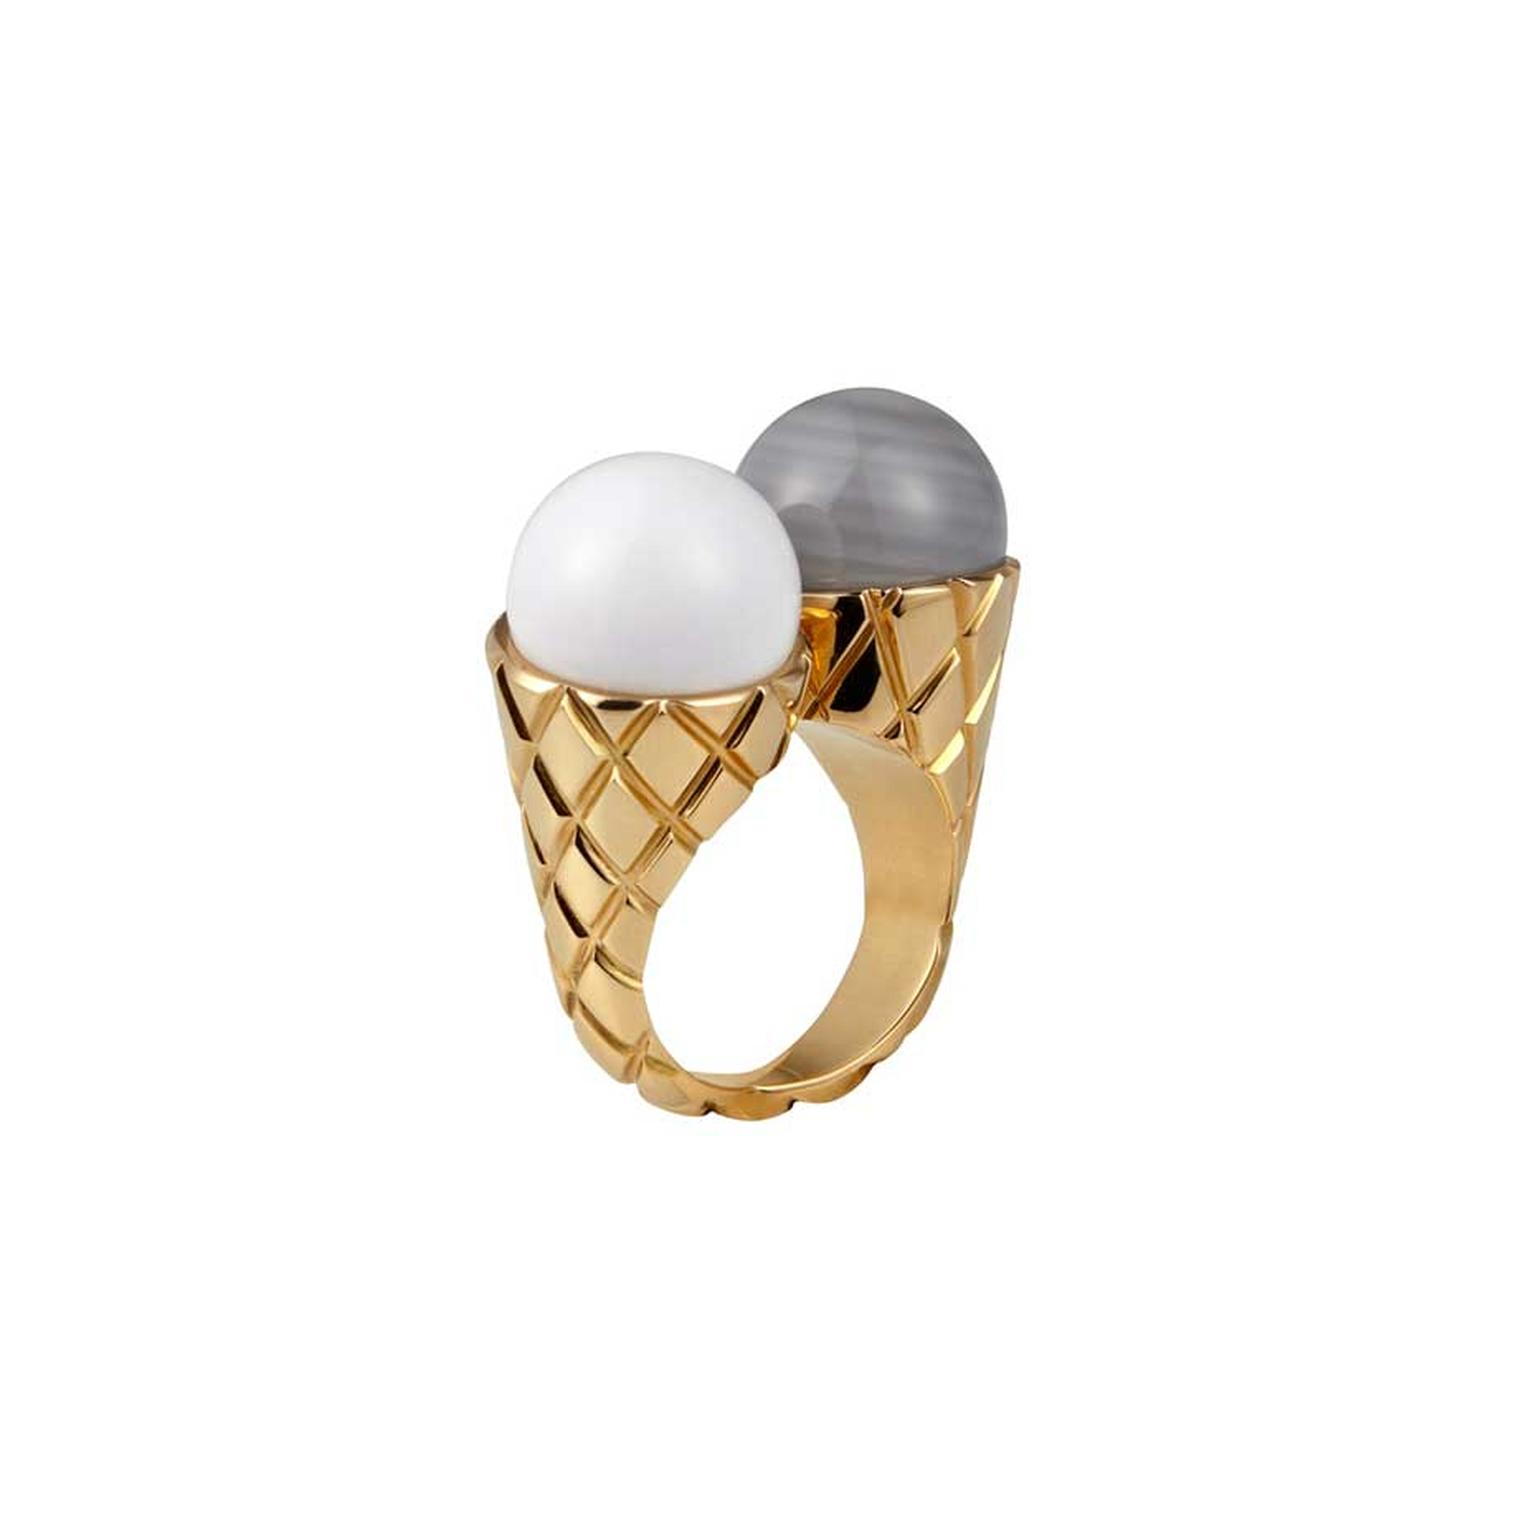 Cora Sheibani's Ice Cream ring in 18ct rose gold with grey striped chalcedony and cacholong evokes memories of sunny days on the beach. Available at kultia.com.